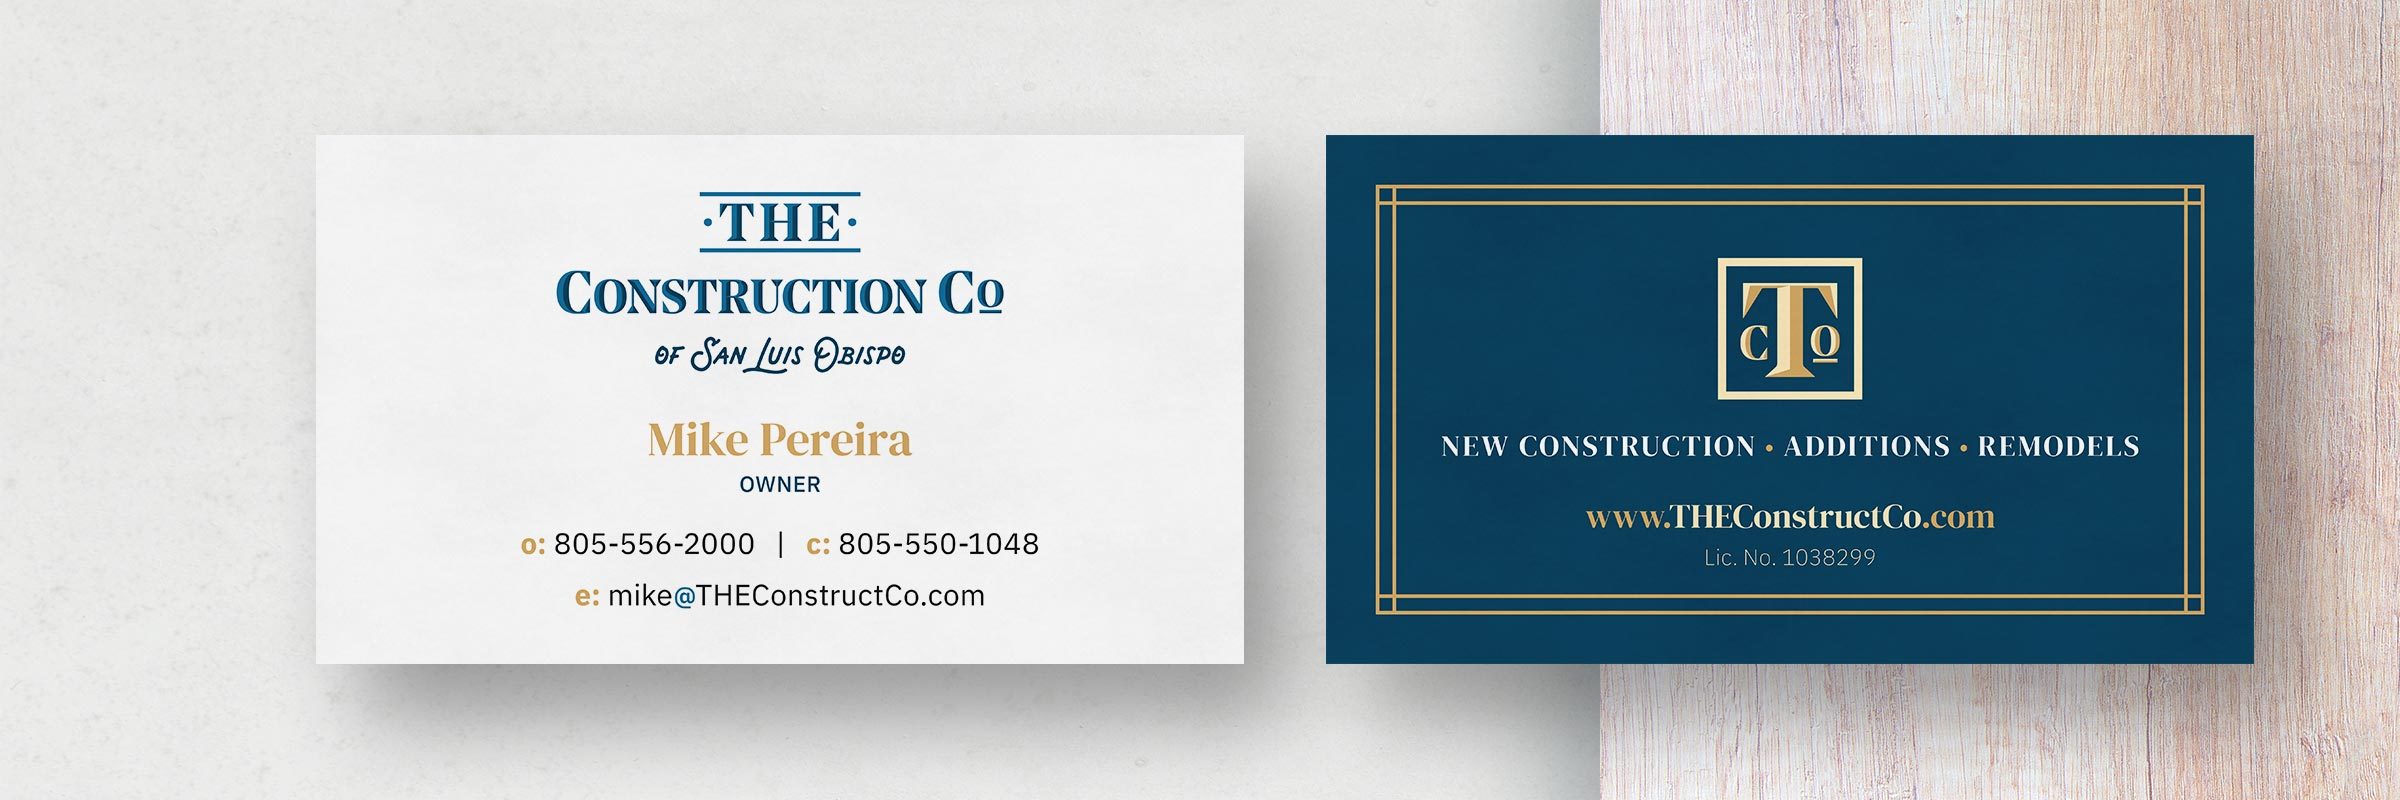 SLO-Construction-Co-Branding-04-business-card